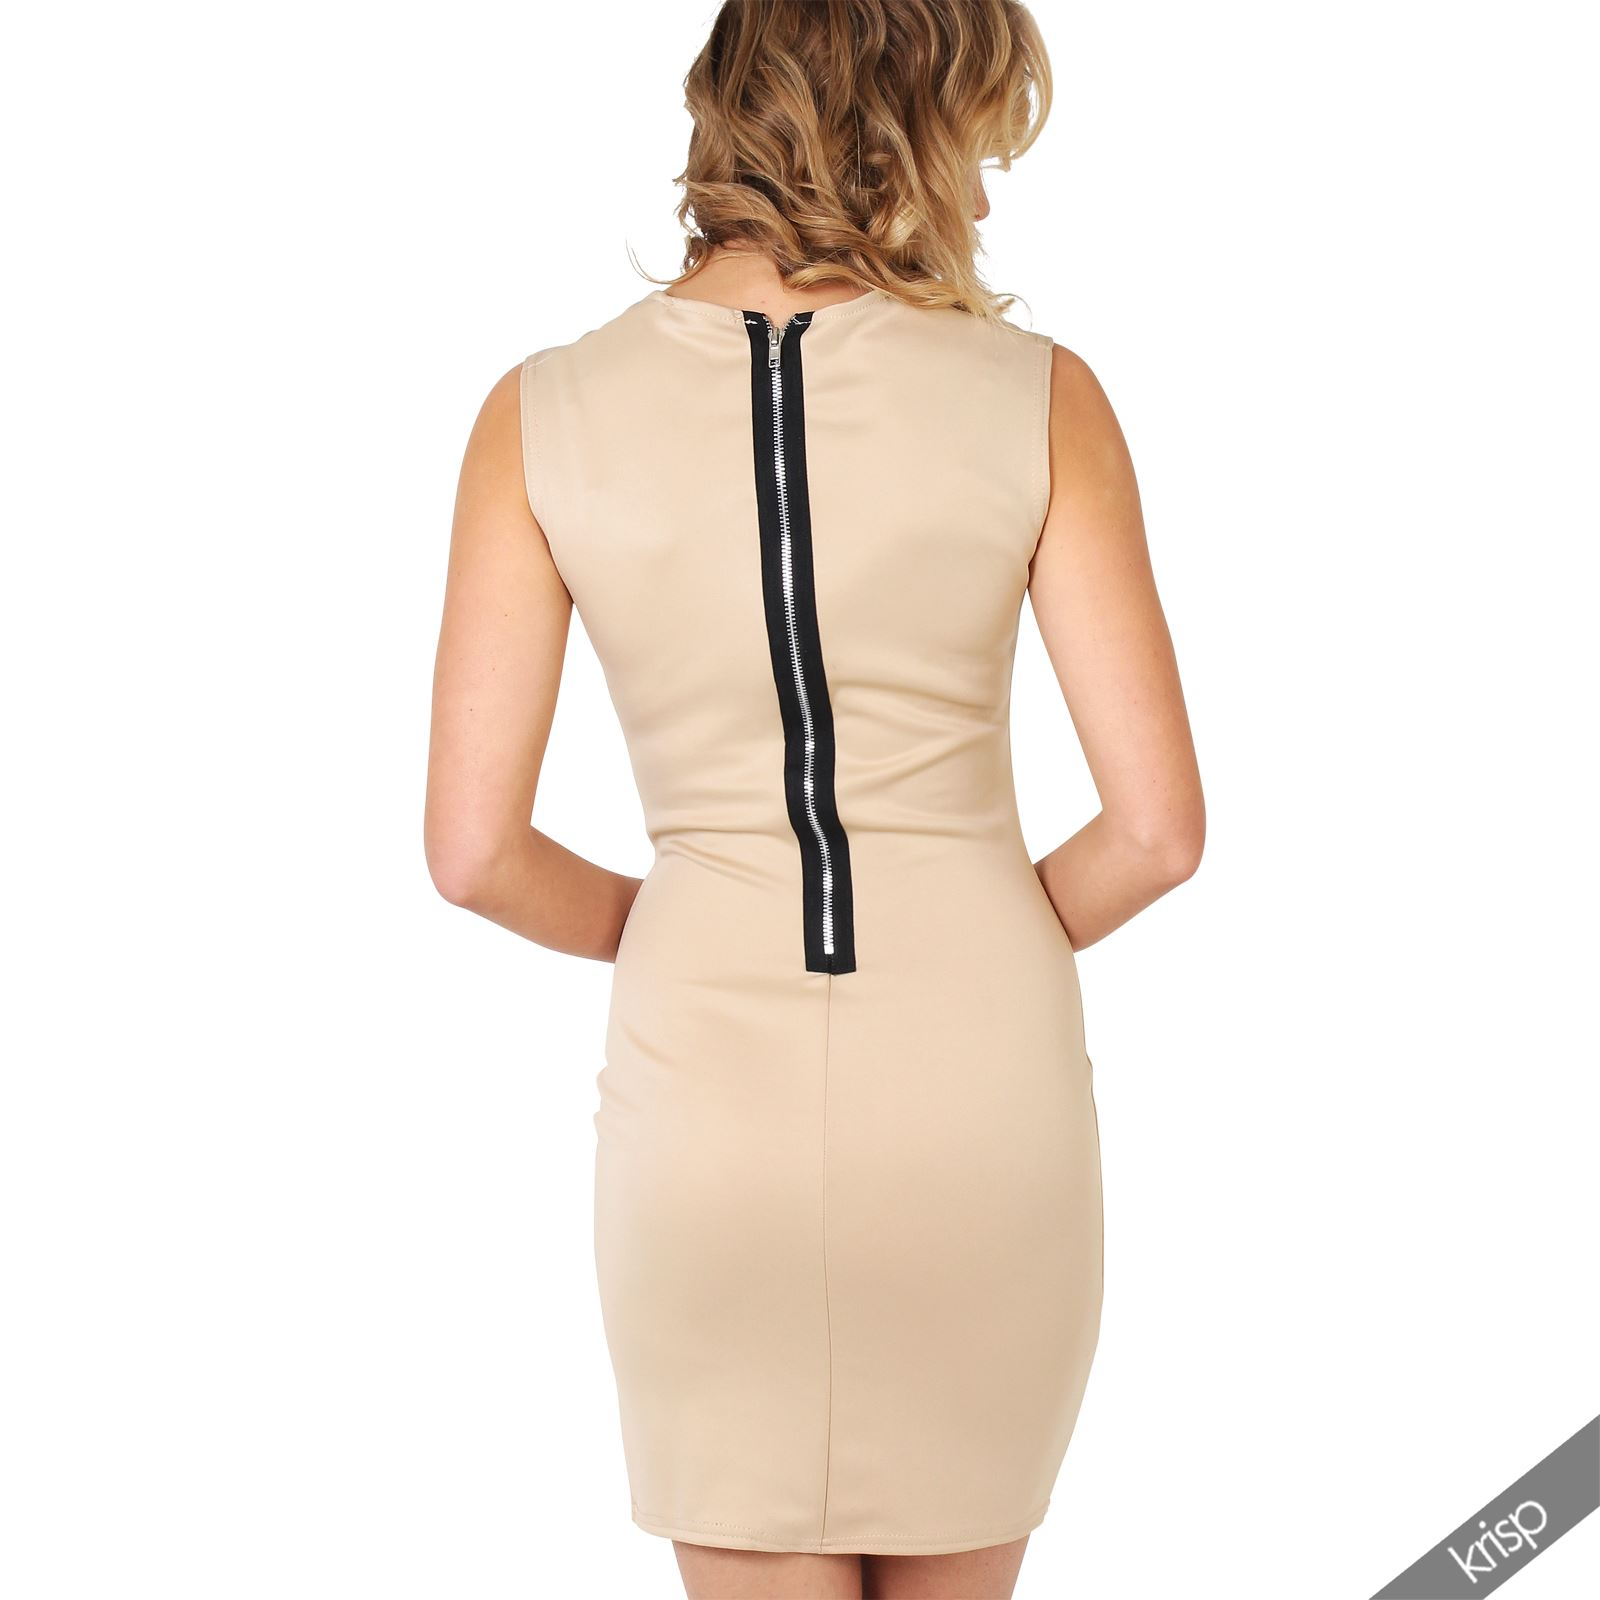 Ladies-Fashion-Bodycon-Dress-Sleeveless-Backless-Party-Fitted-Cocktail-Pencil thumbnail 27